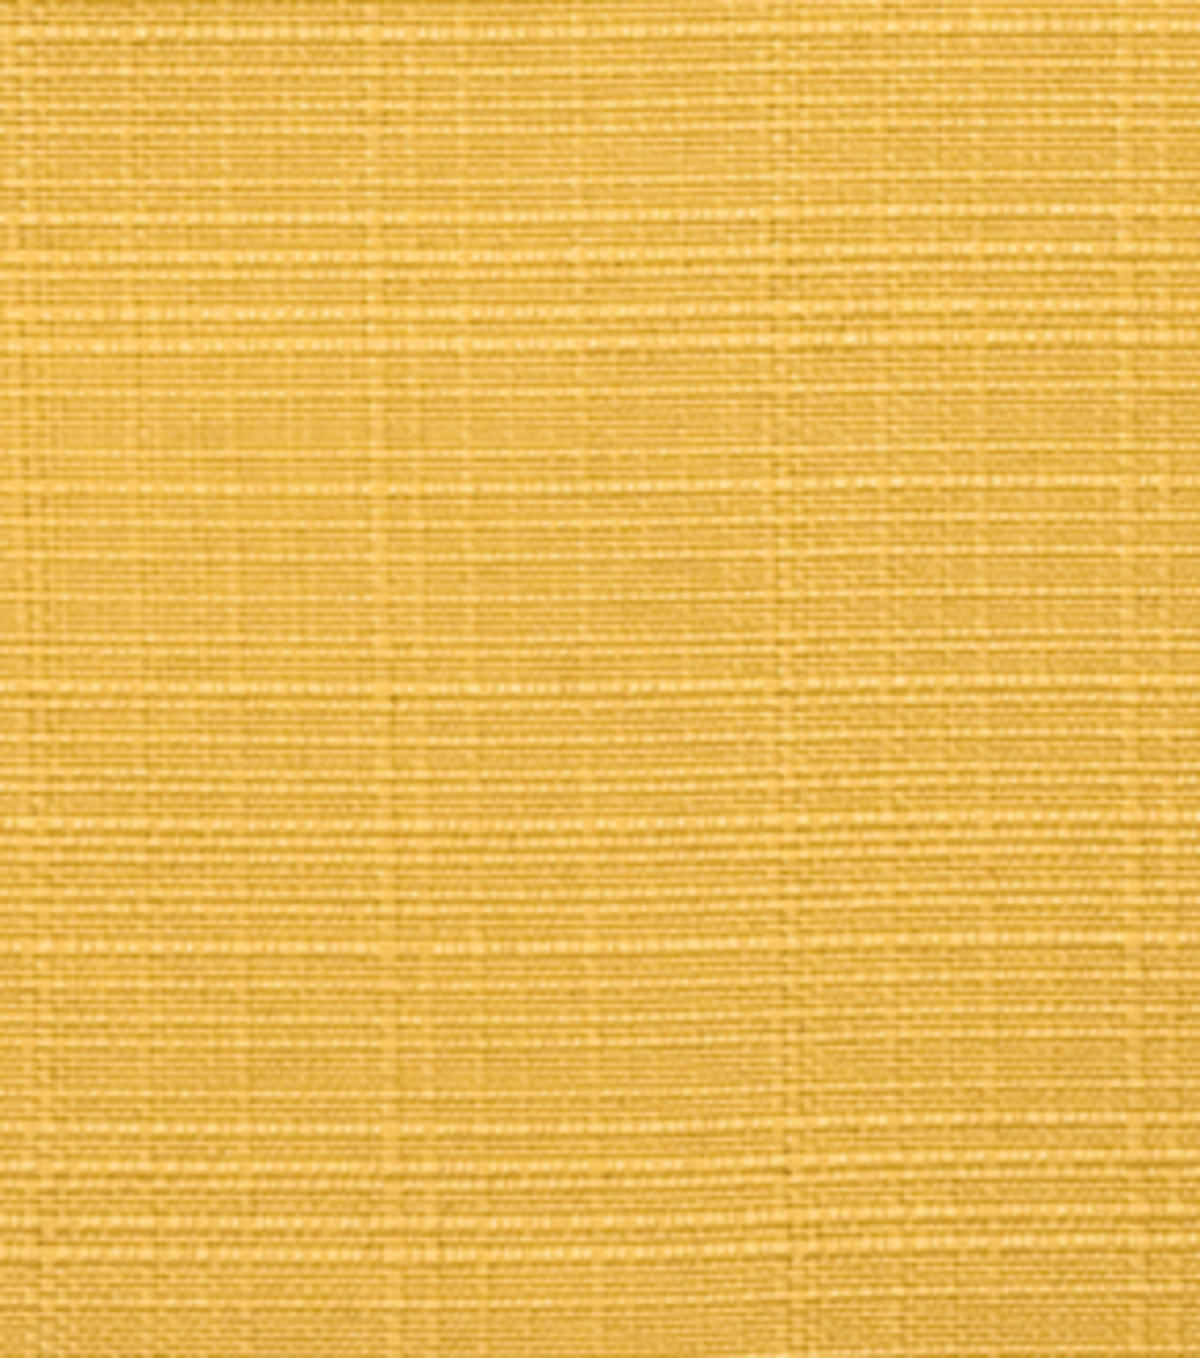 8\u0027\u0027x8\u0027\u0027 Home Decor Fabric Swatch-Solid Fabric Eaton Square Kung Scotch